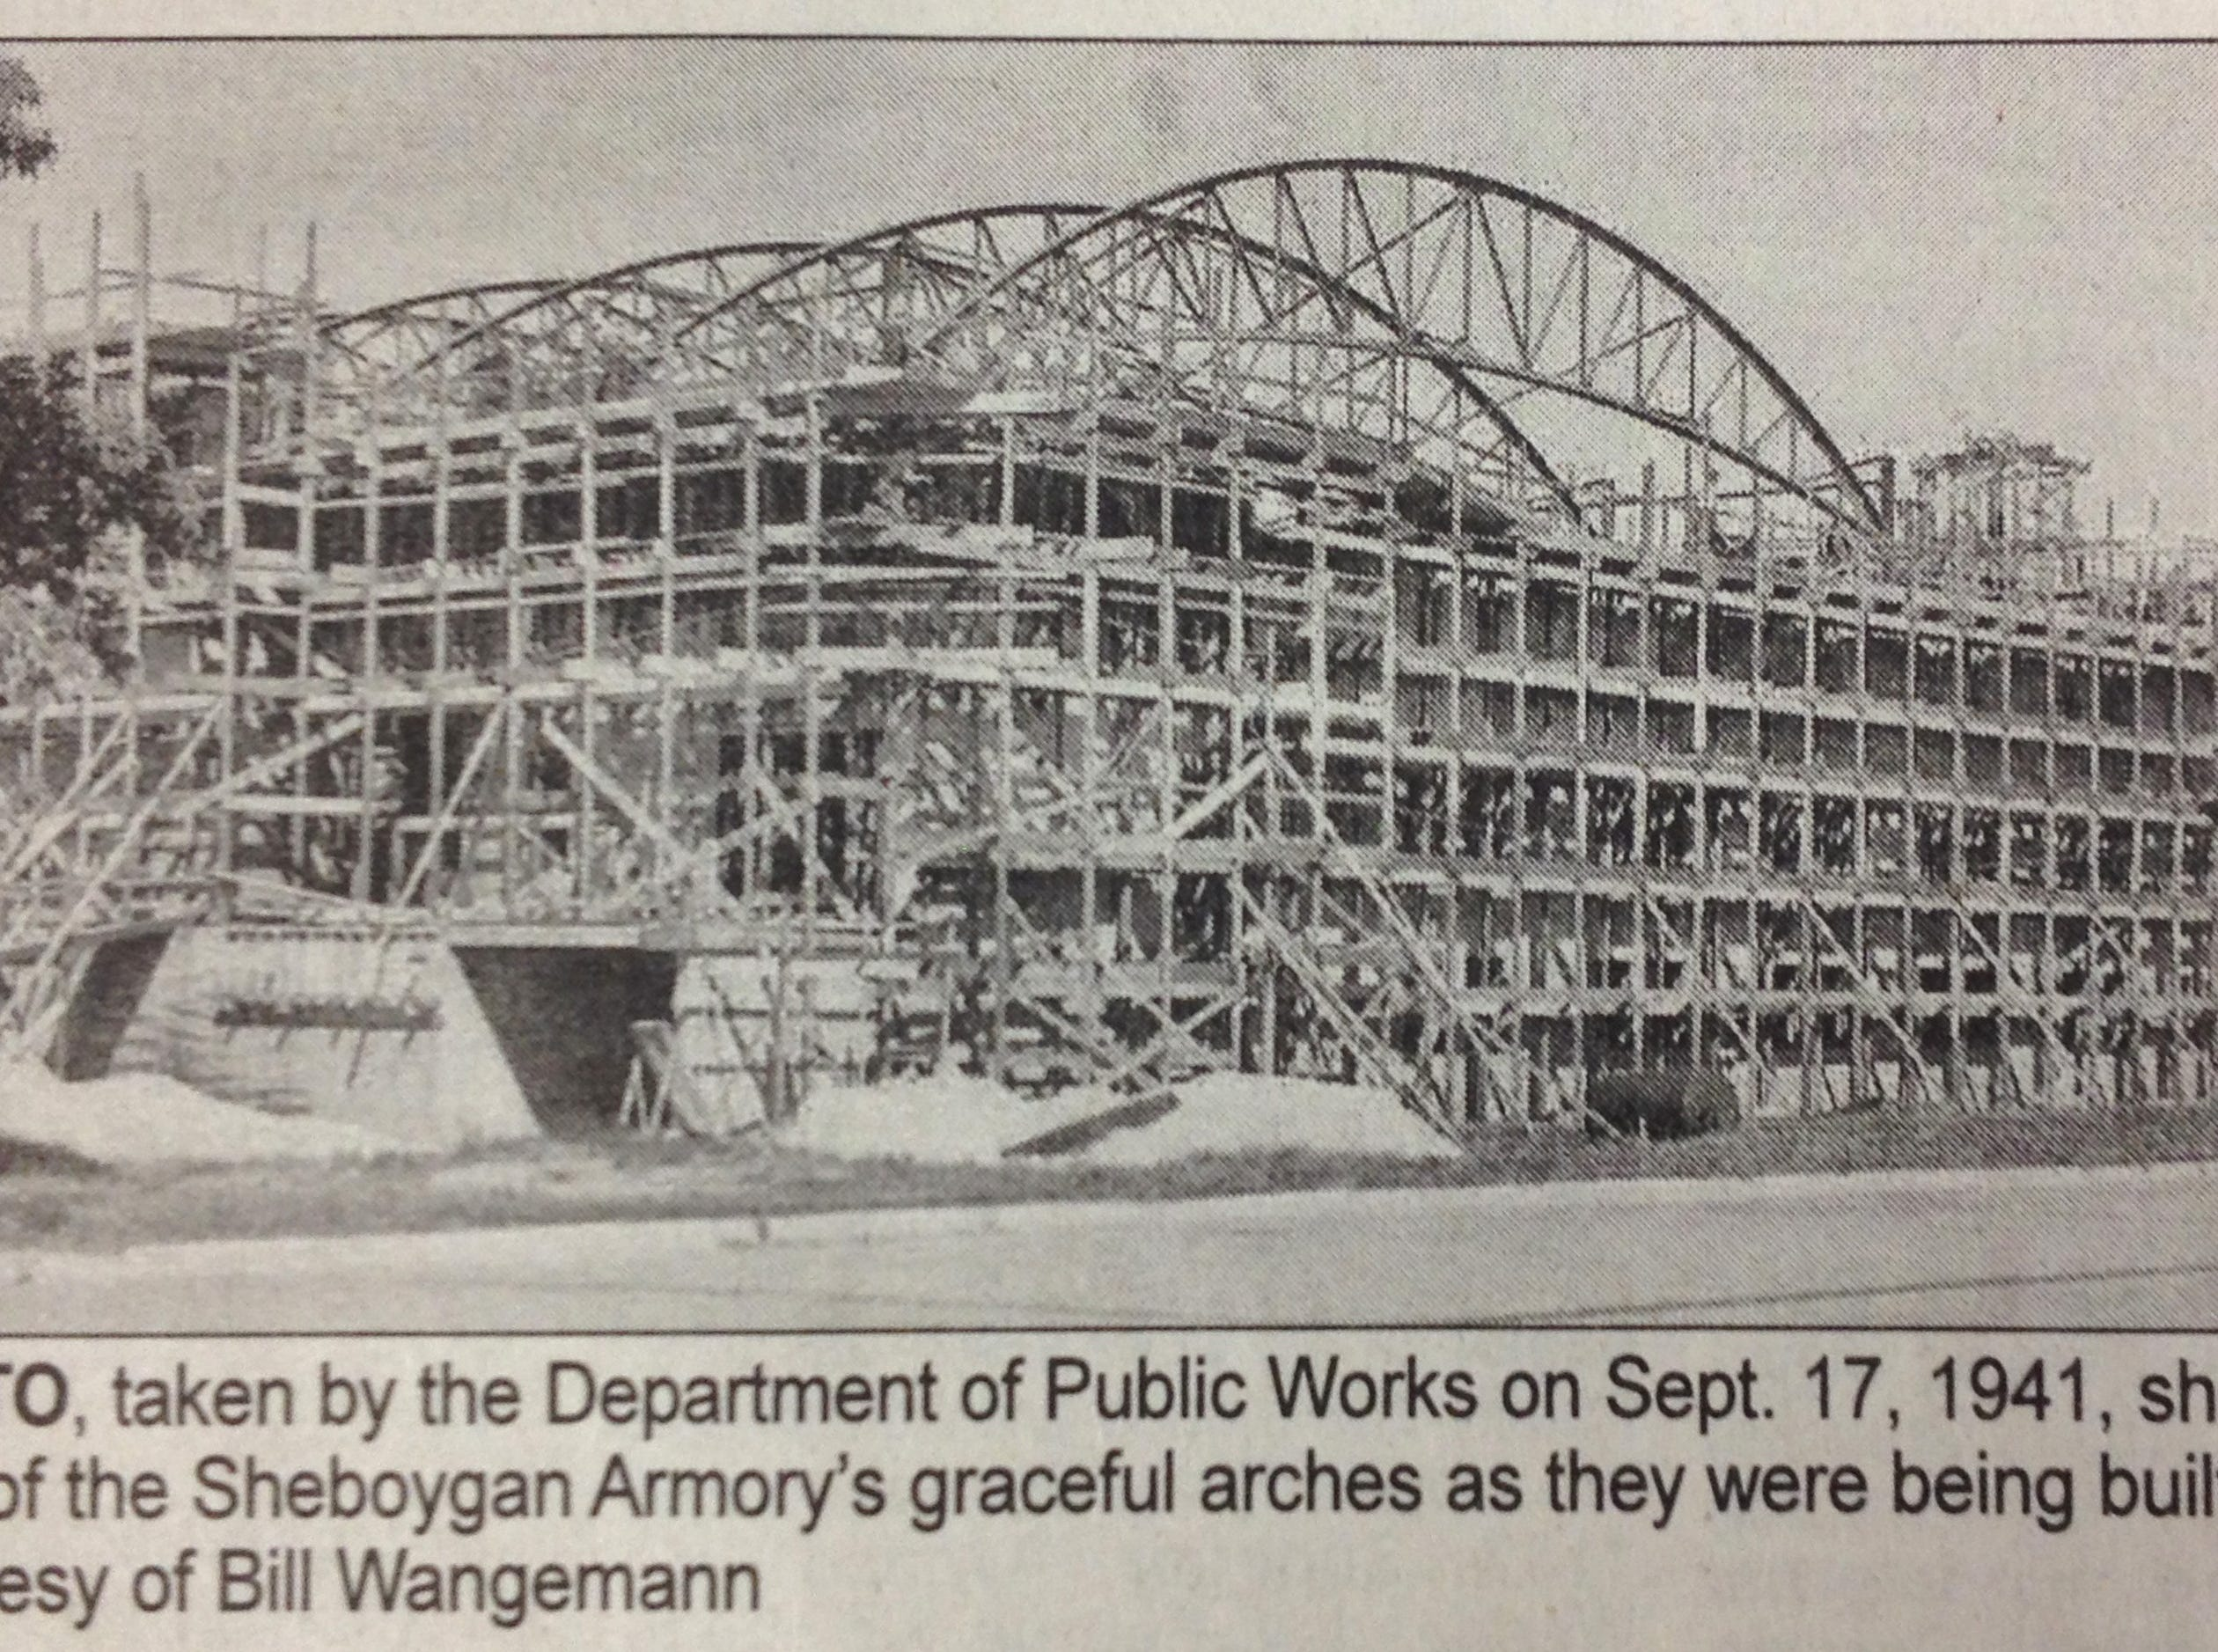 A clipping from the Sheboygan Press of a photo taken by the department of public works when the Sheboygan Armory was built in the 1940s.